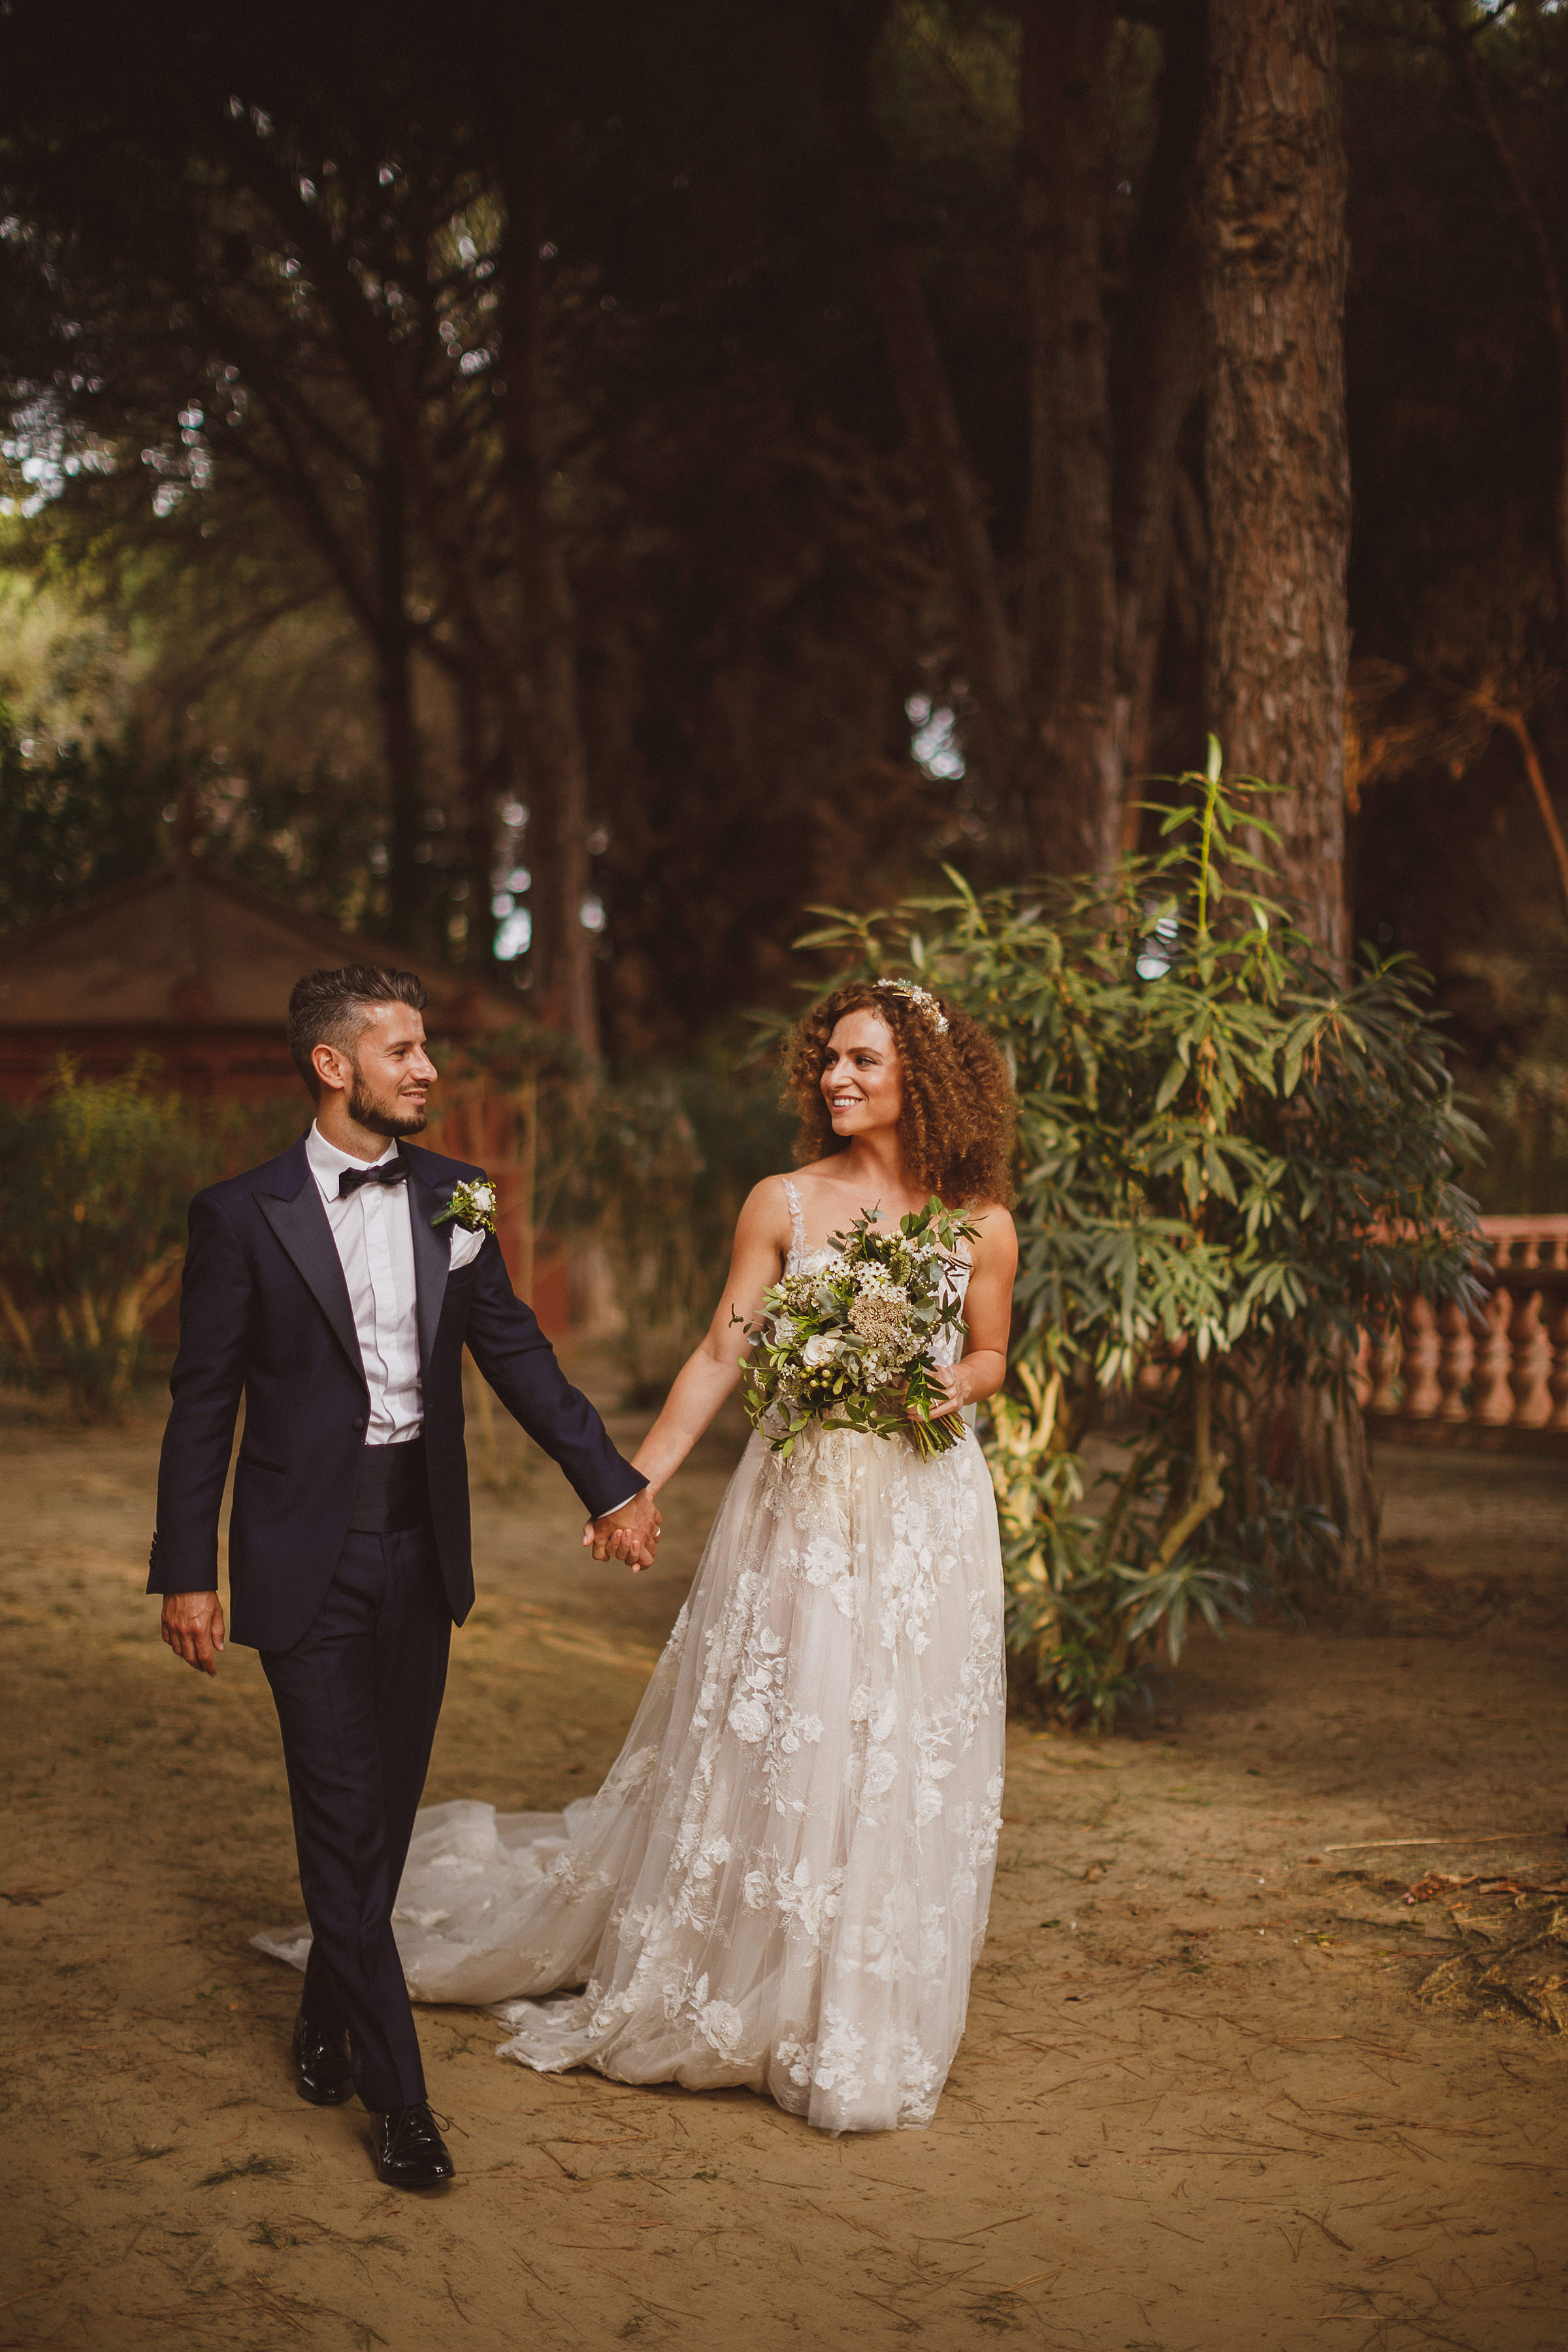 Bride and groom in wooded setting - photo by Ed Peers Photography